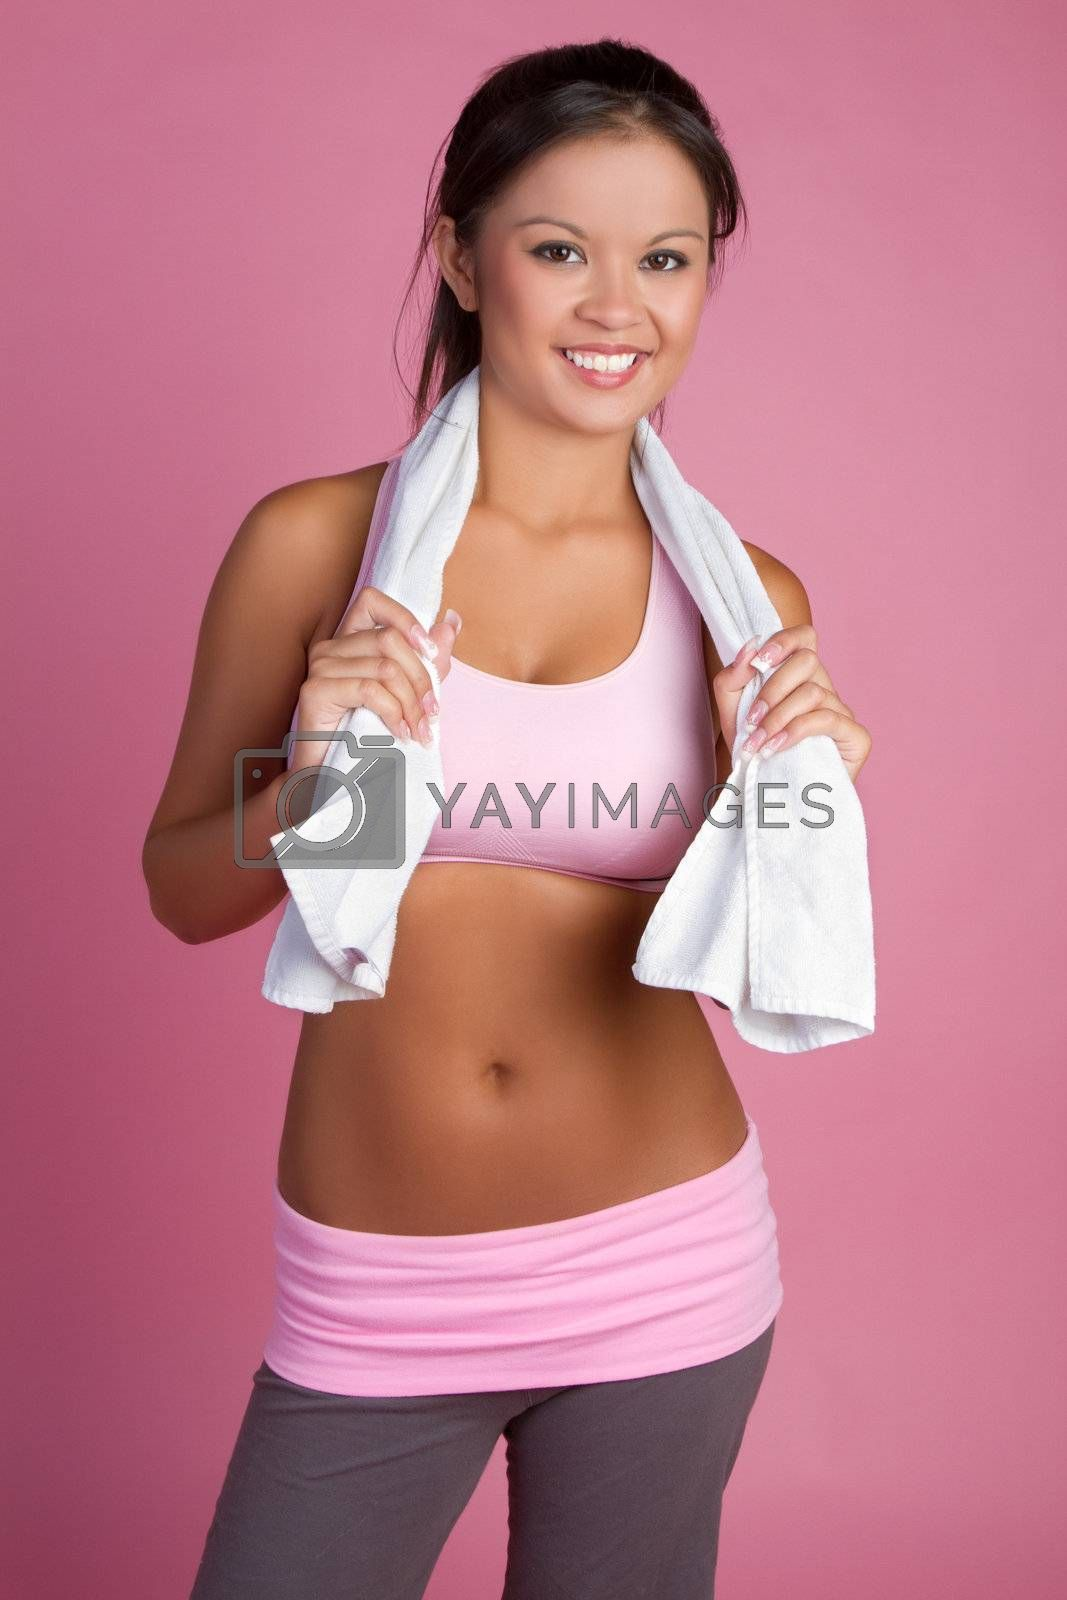 Beautiful smiling fitness woman resting